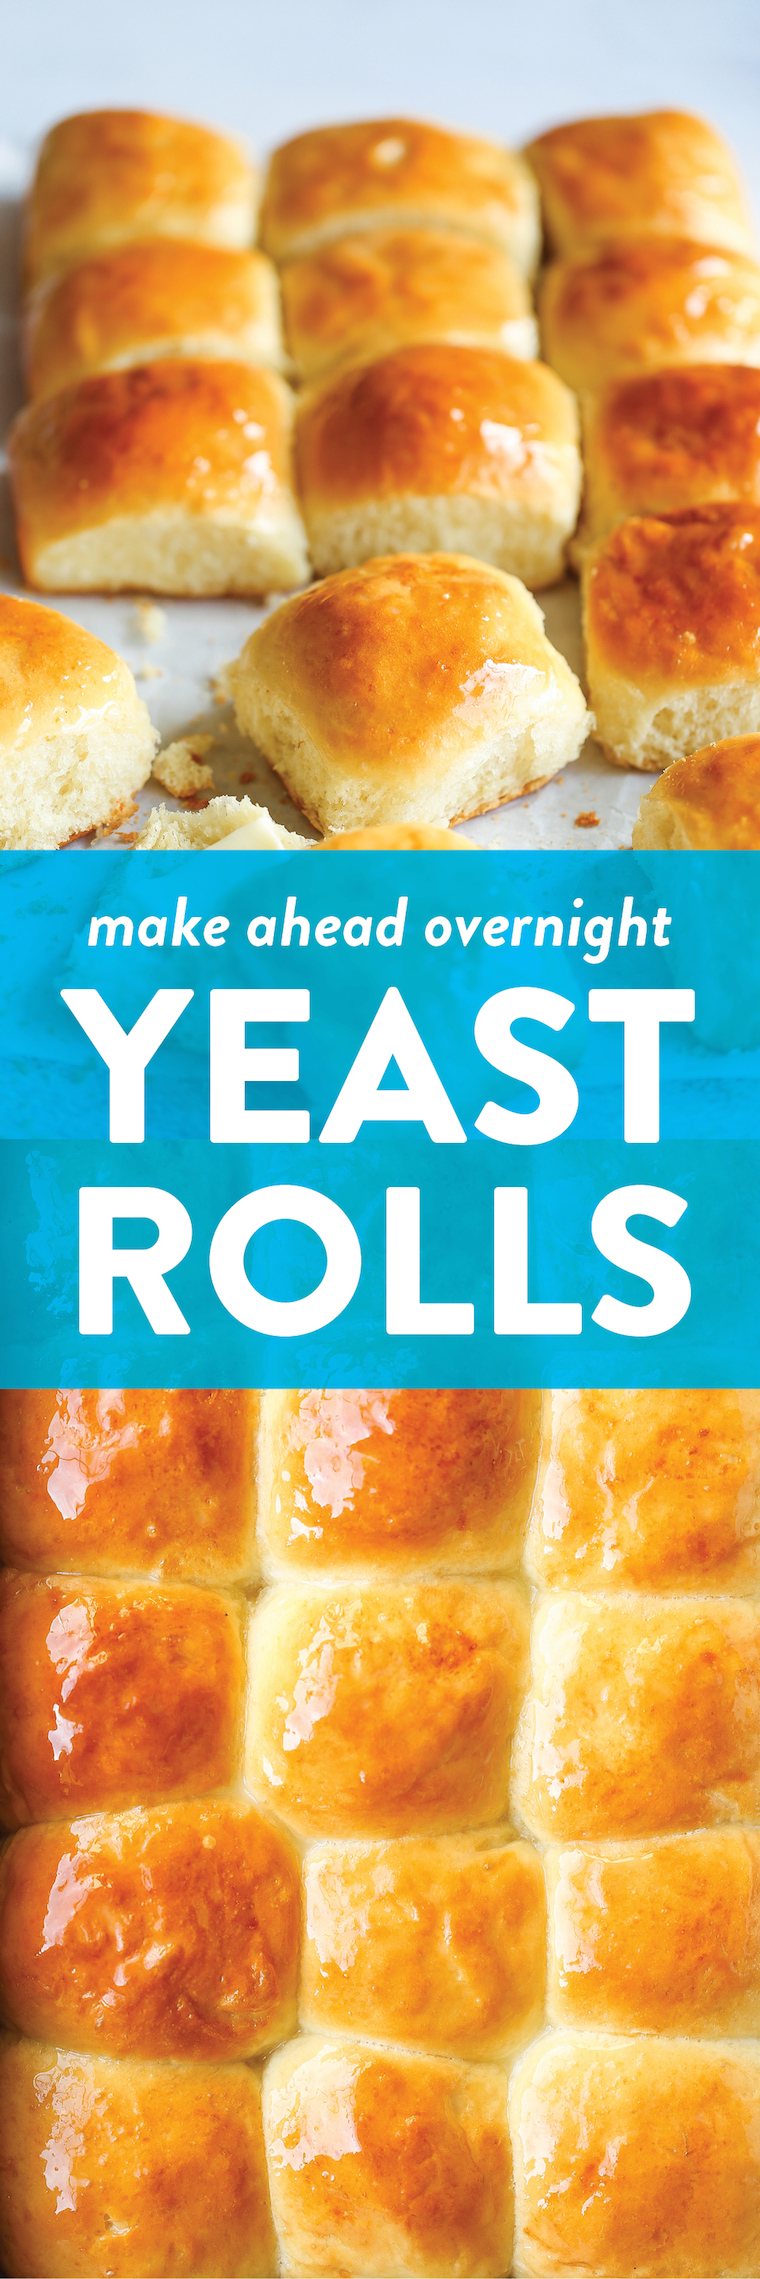 Make Ahead Yeast Rolls - Make-ahead overnight dinner rolls? YES, PLEASE! And they come out amazingly soft + buttery. I bet you can't stop with just 1 roll!